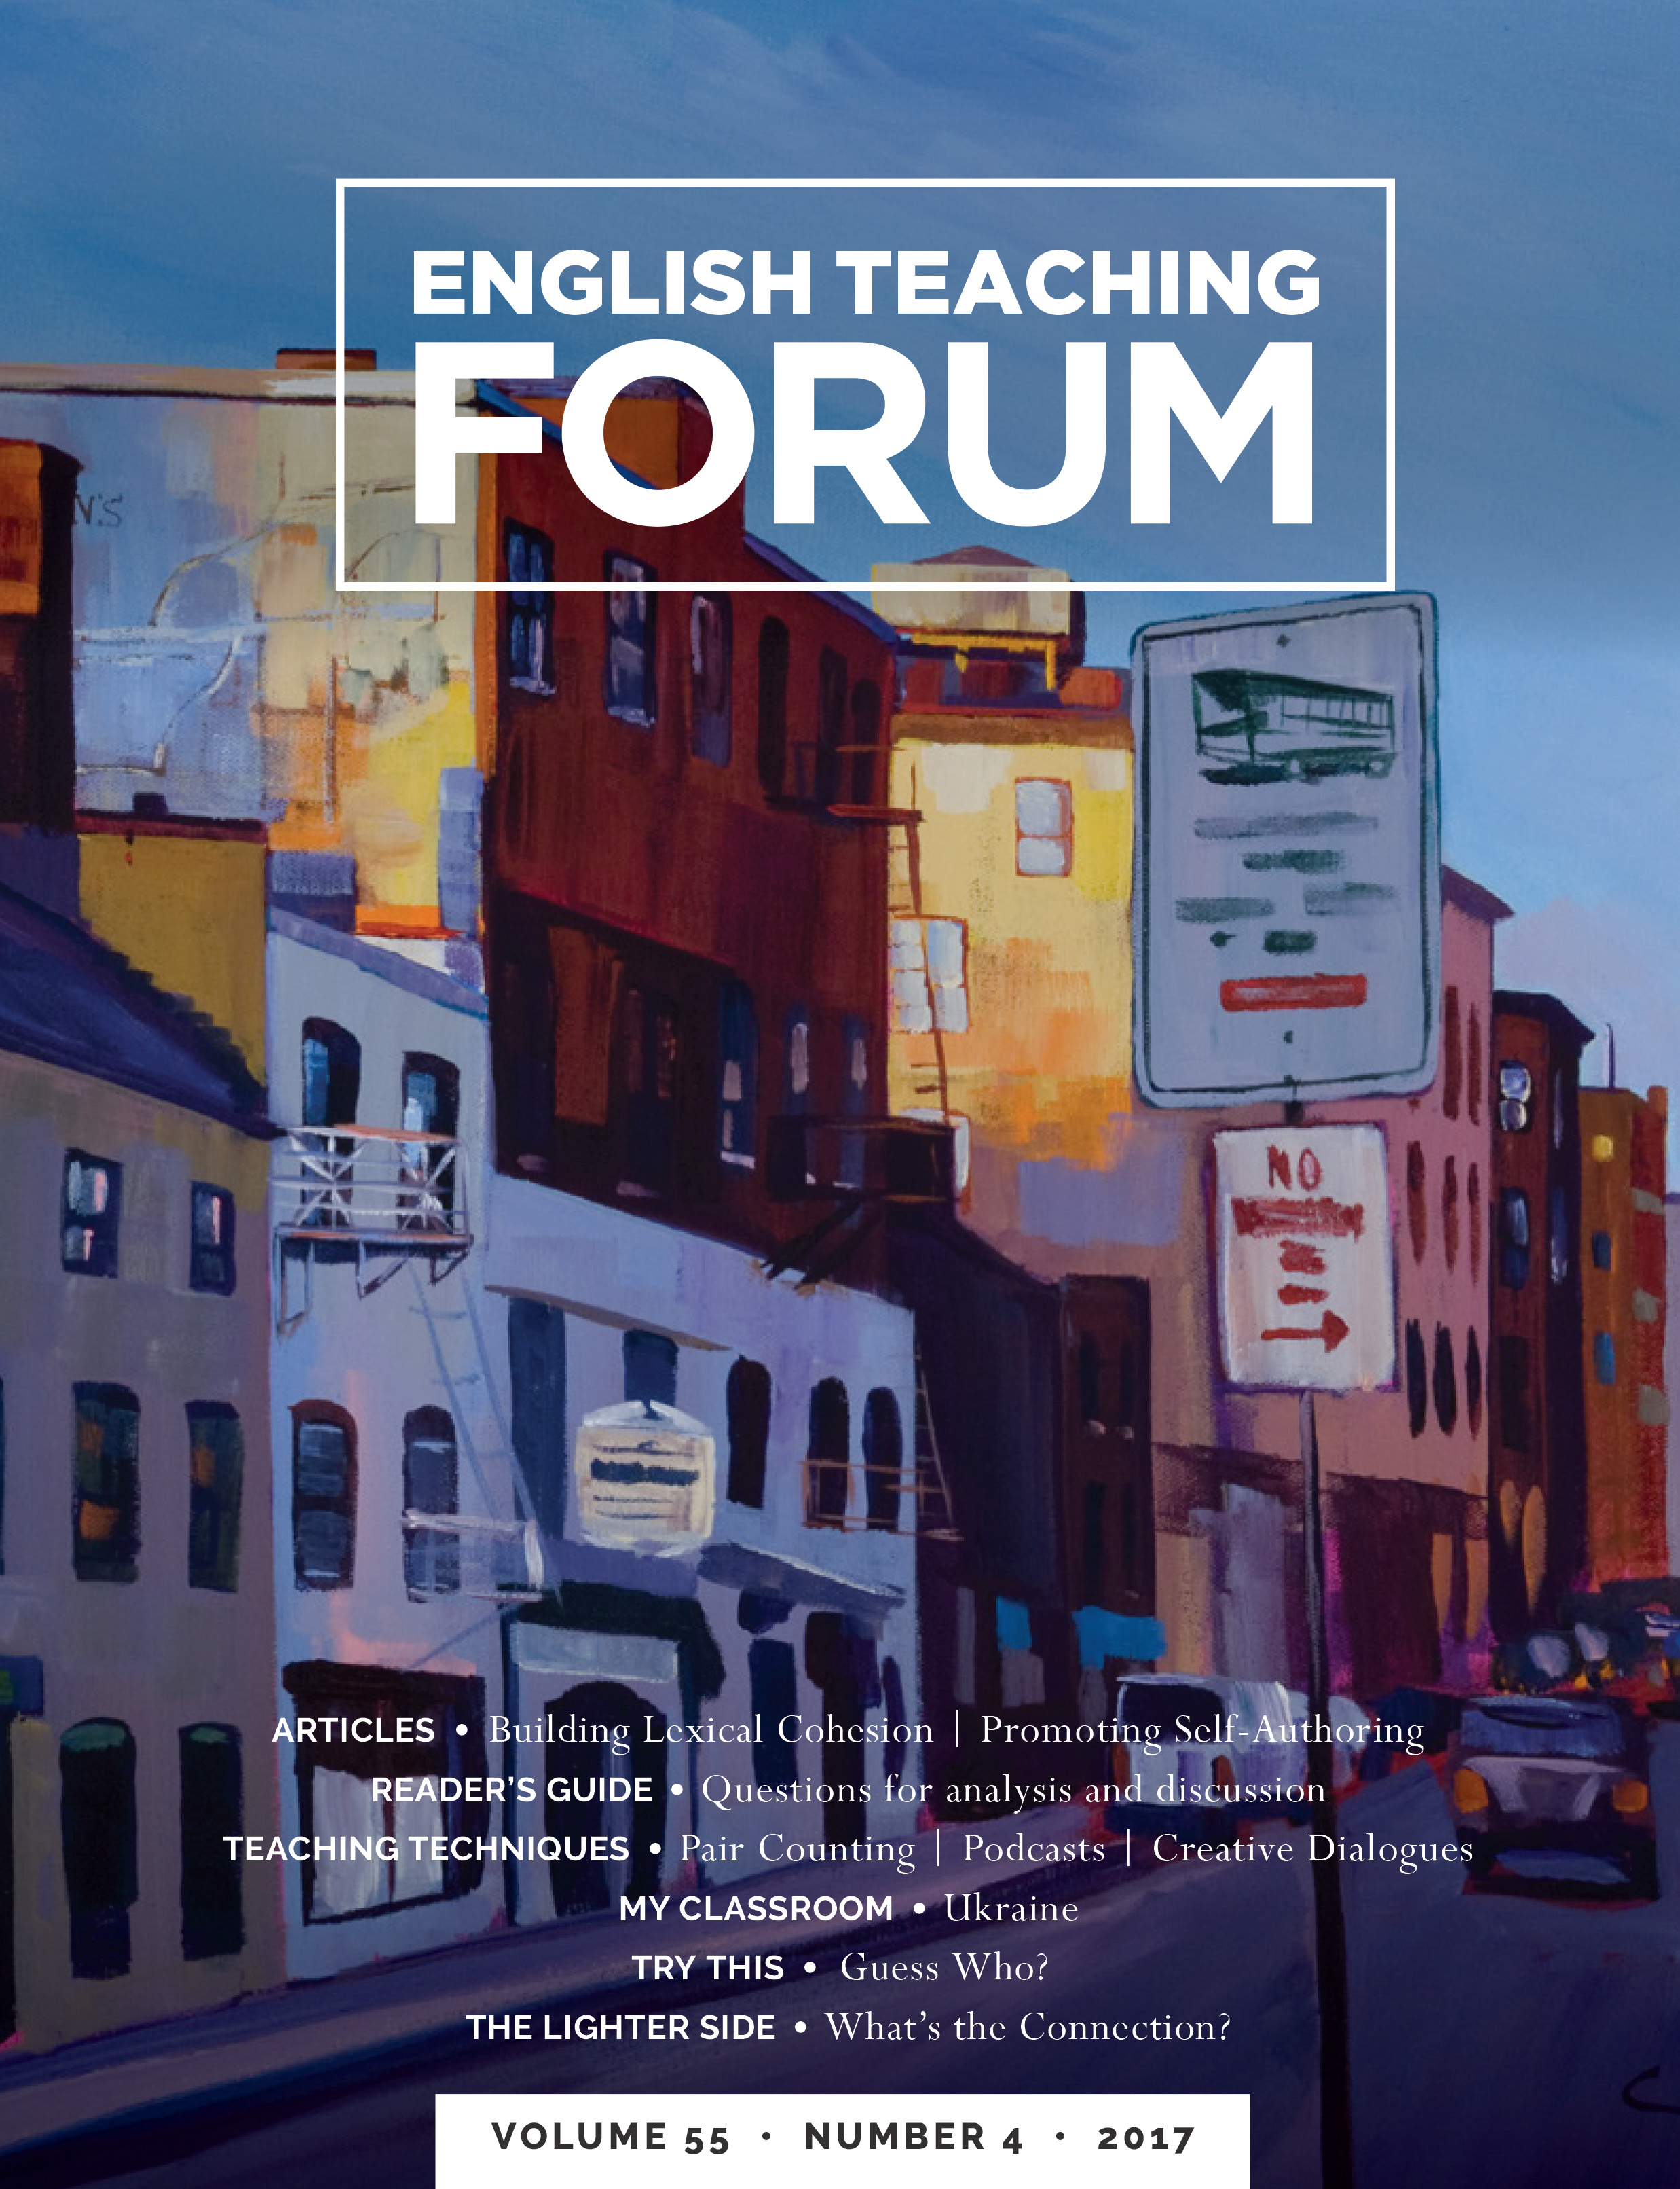 English Teaching Forum Volume 55, Number 4 | American English